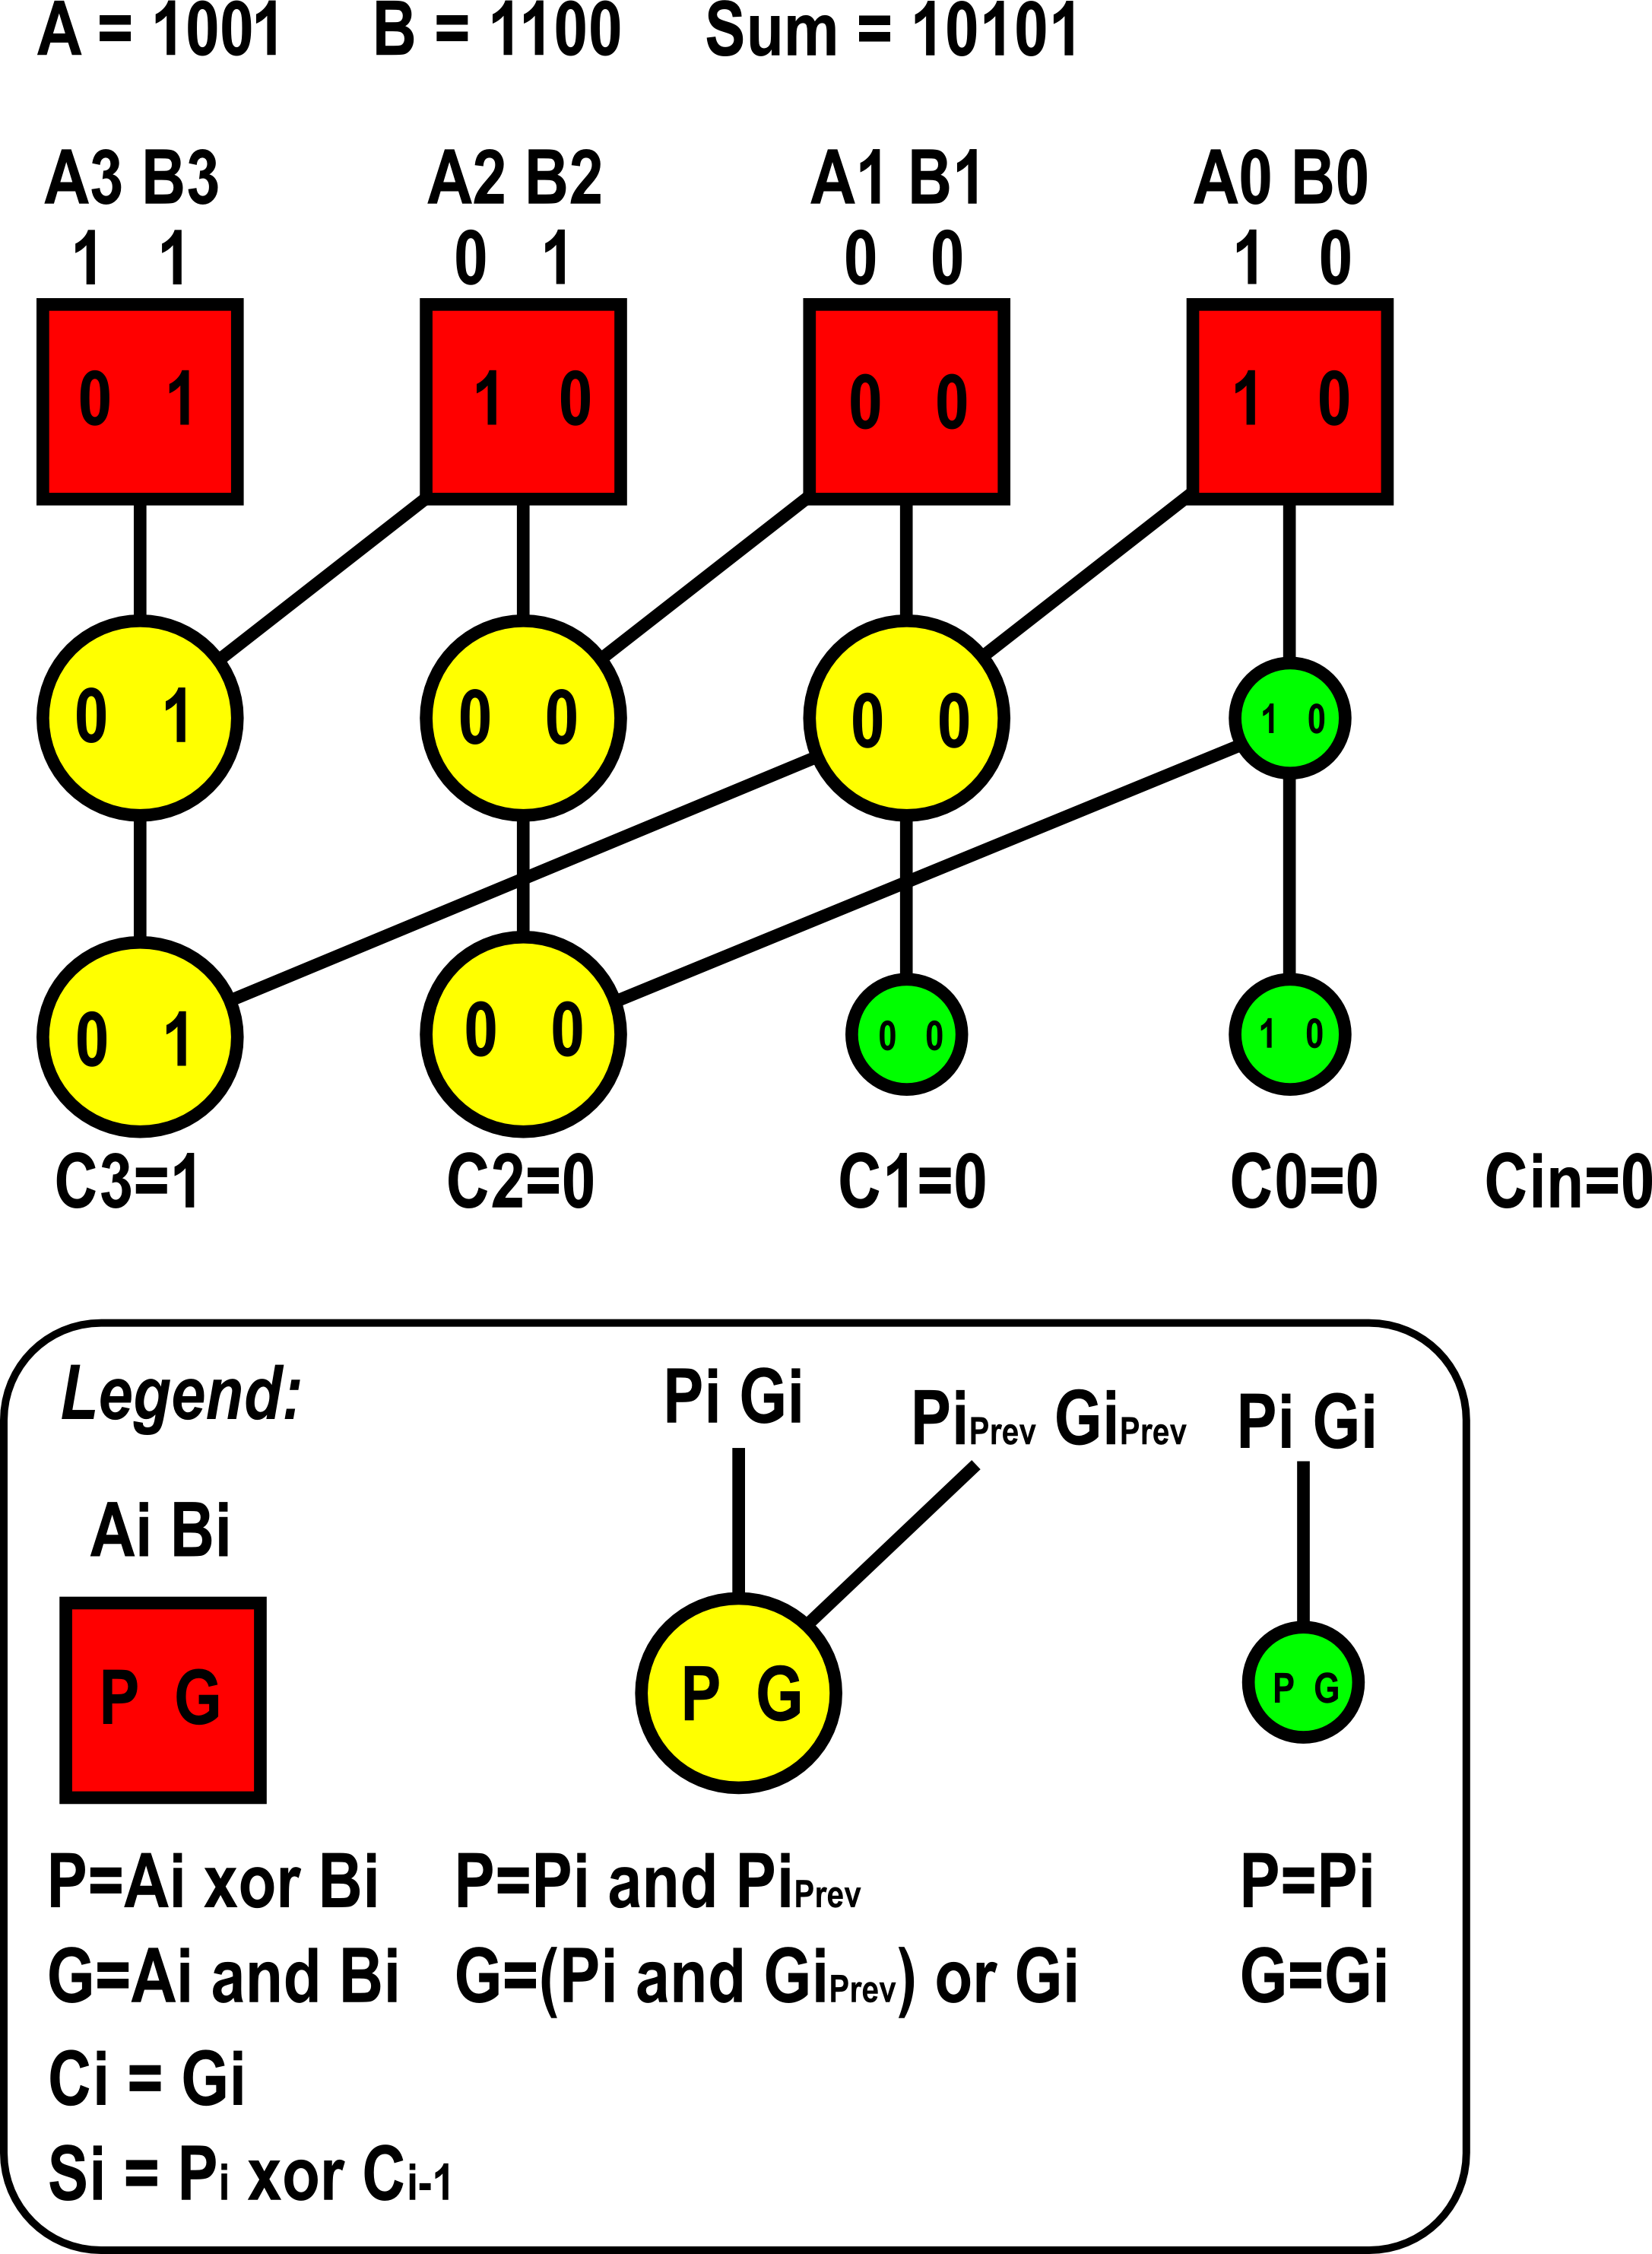 File:4 bit Kogge Stone Adder Example new.png